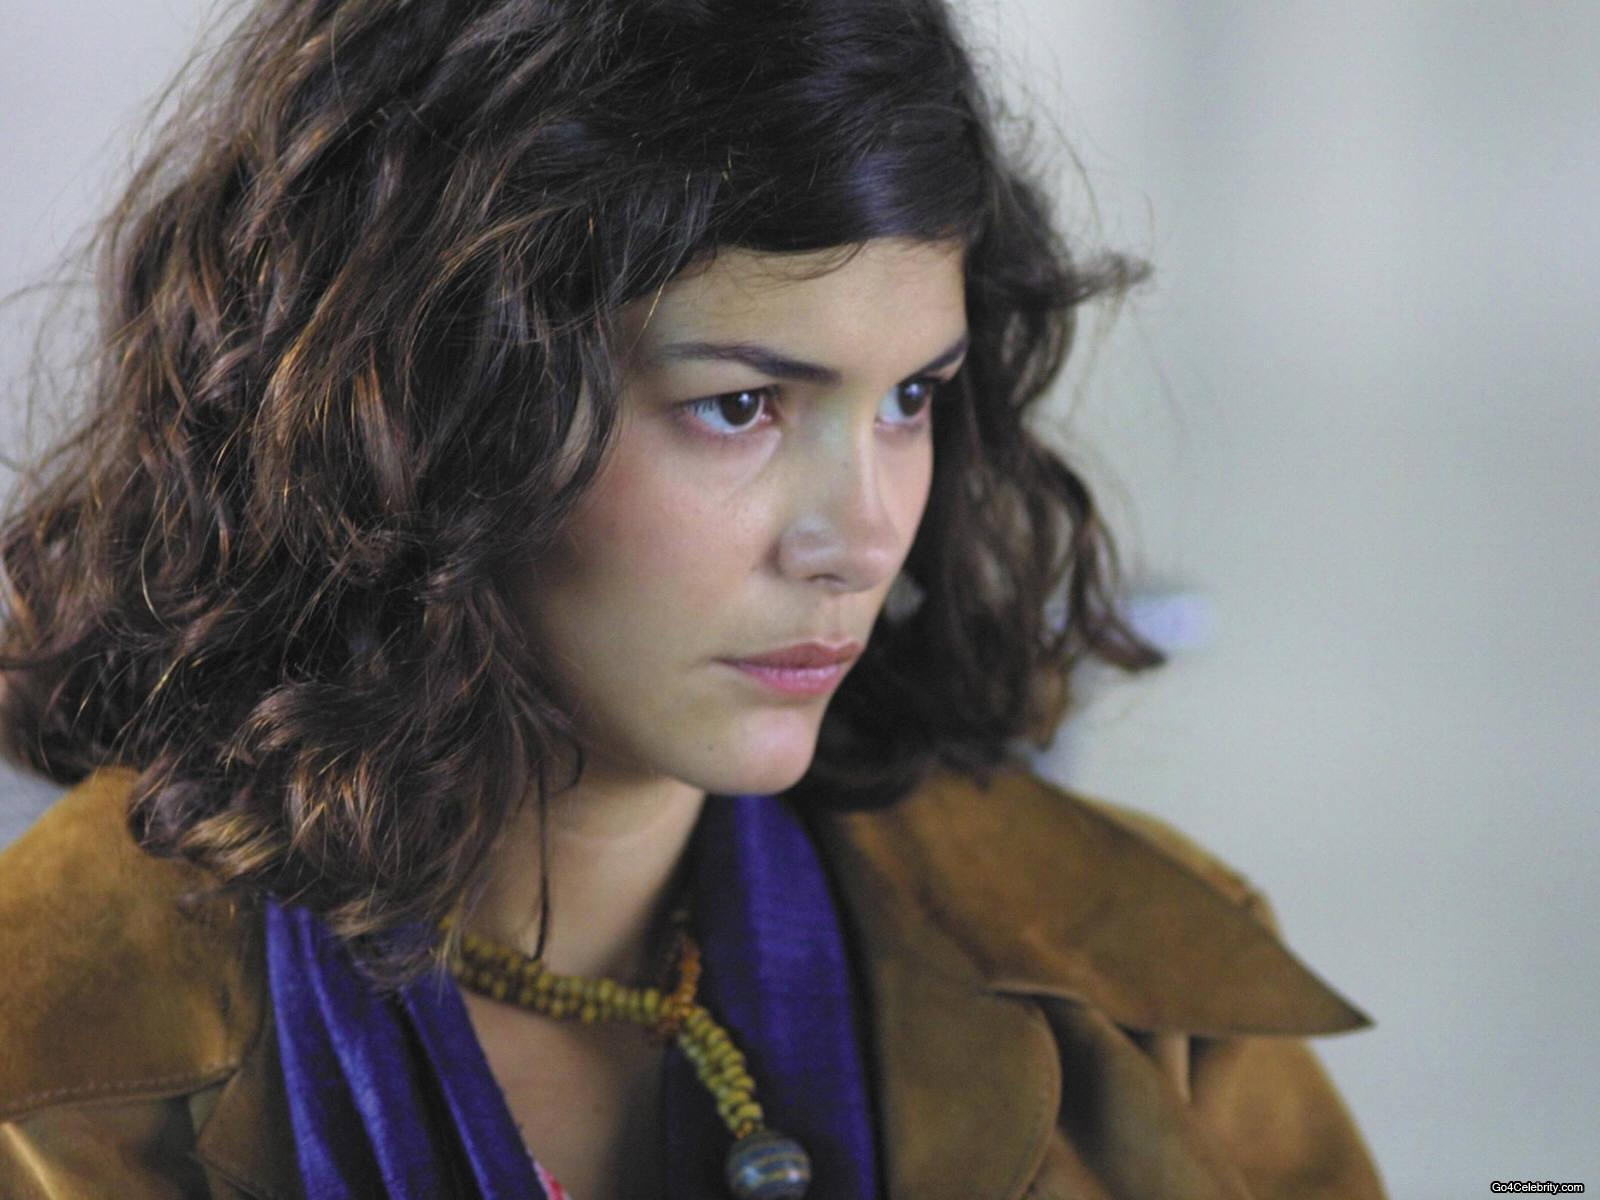 Audrey Justine Tautou (French pronunciation: [odʁɛ totu]; born 9 August, either in 1976[1][2][3][4][5] or 1978[6][7][8][9]) is a French film actress, ...